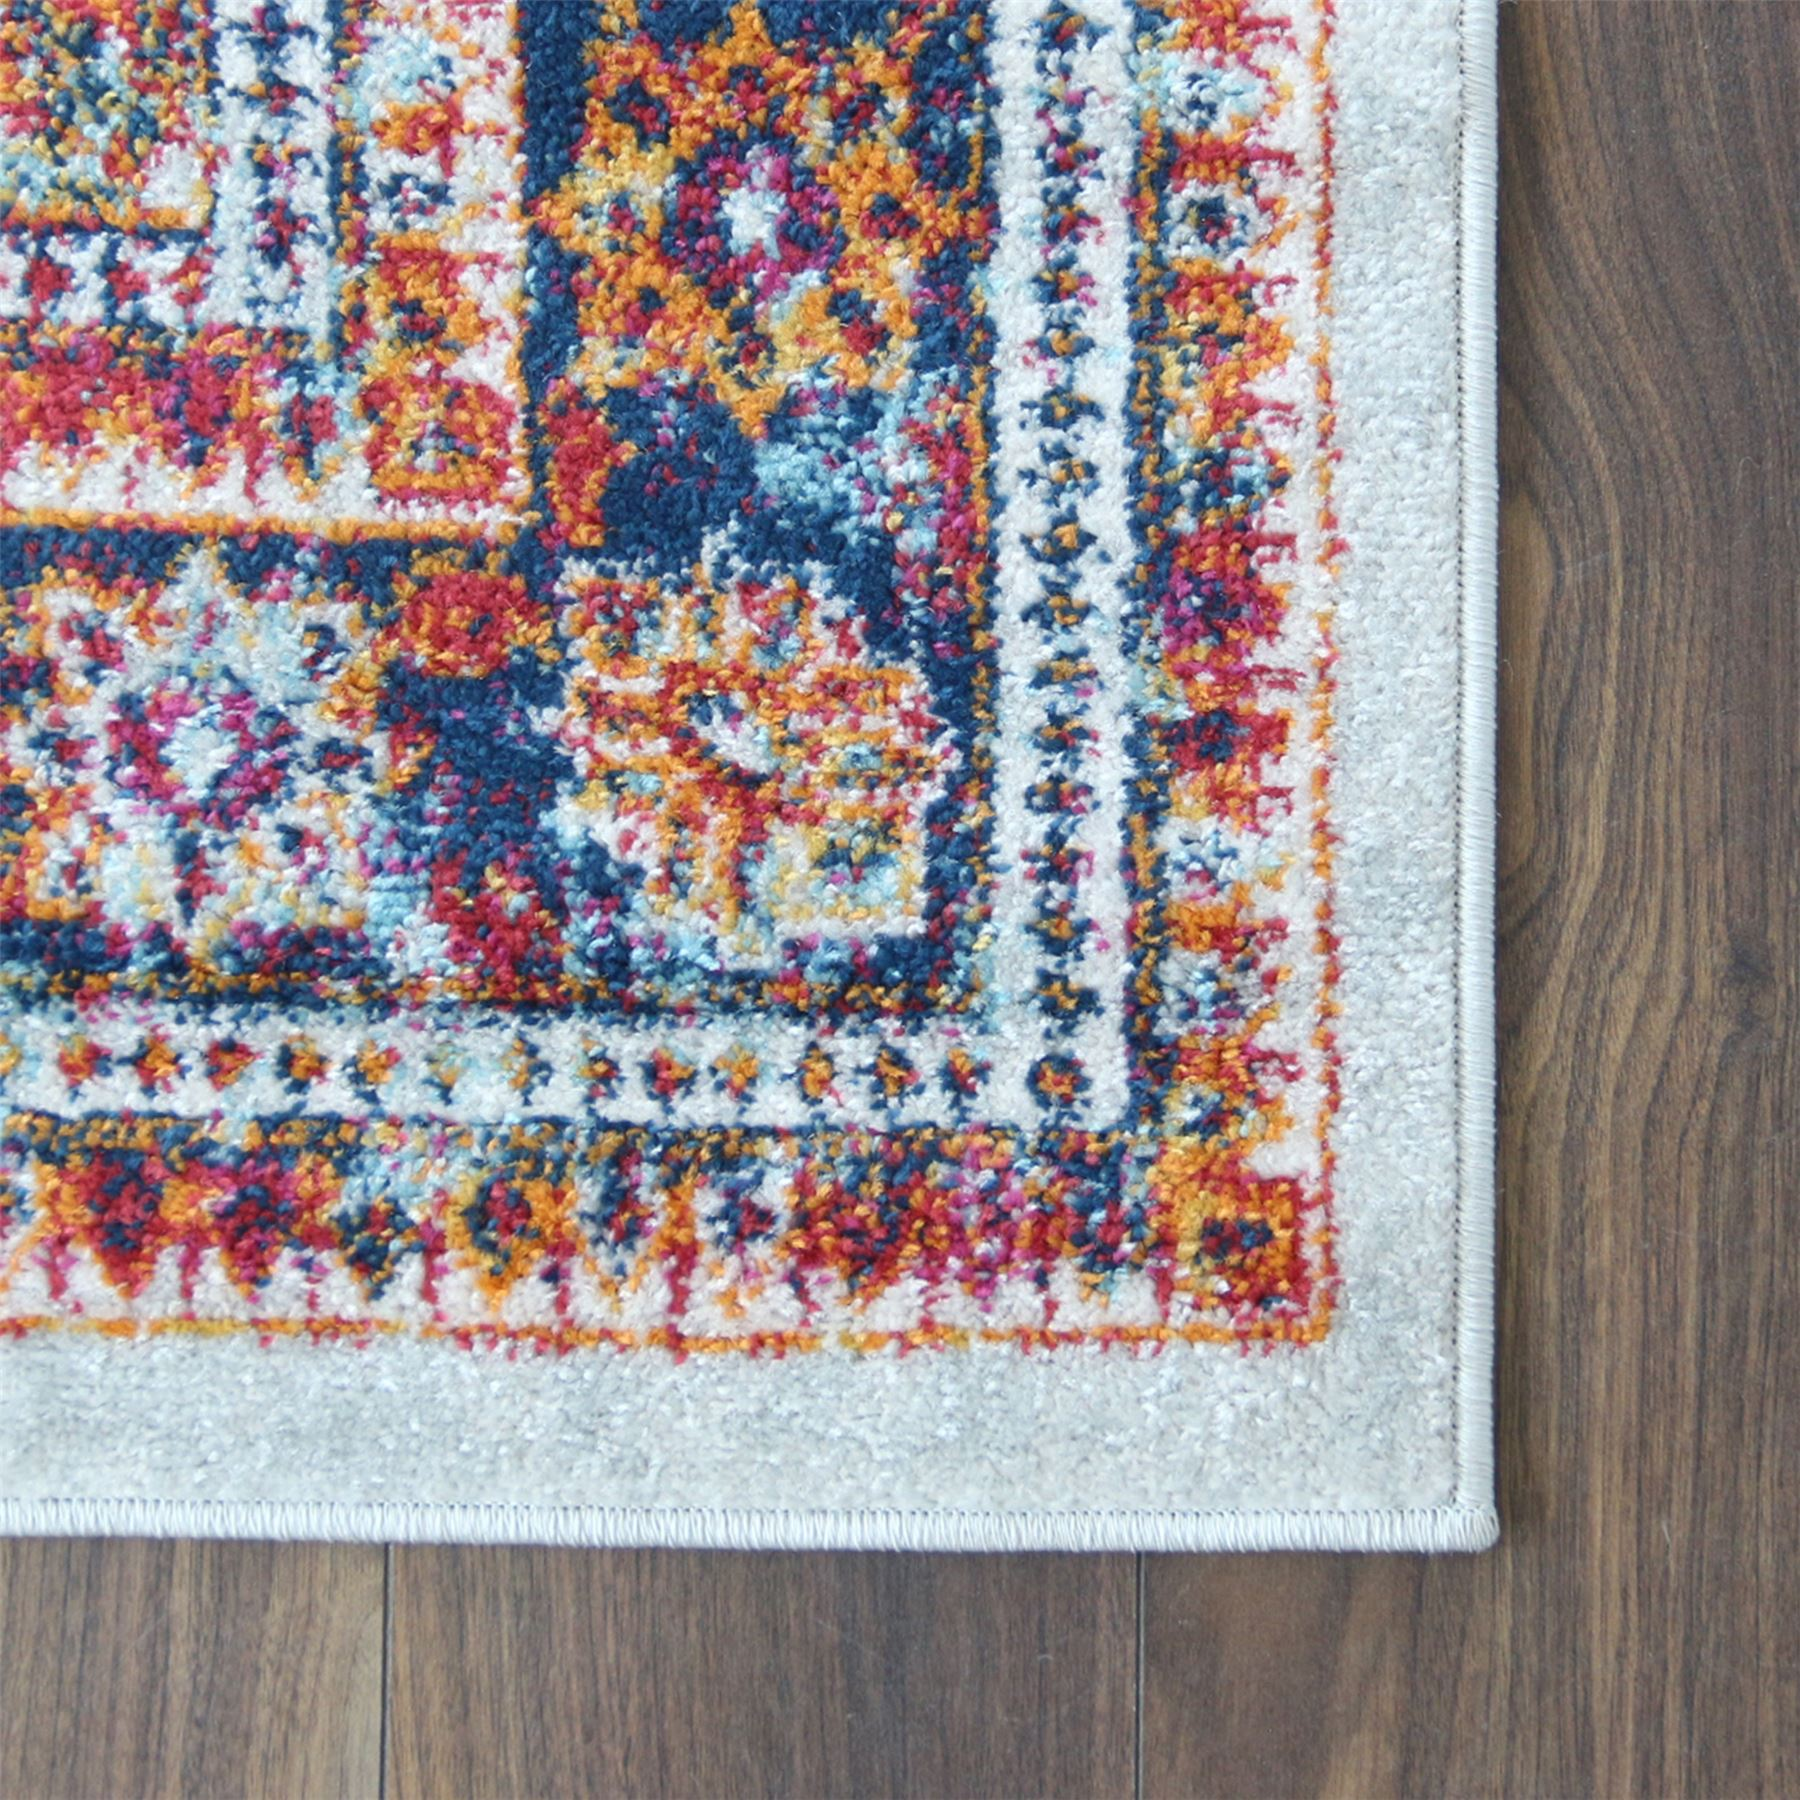 Large-Quality-Traditional-Area-Rug-Assorted-Persian-Floral-Designs-Carpet-Runner thumbnail 88